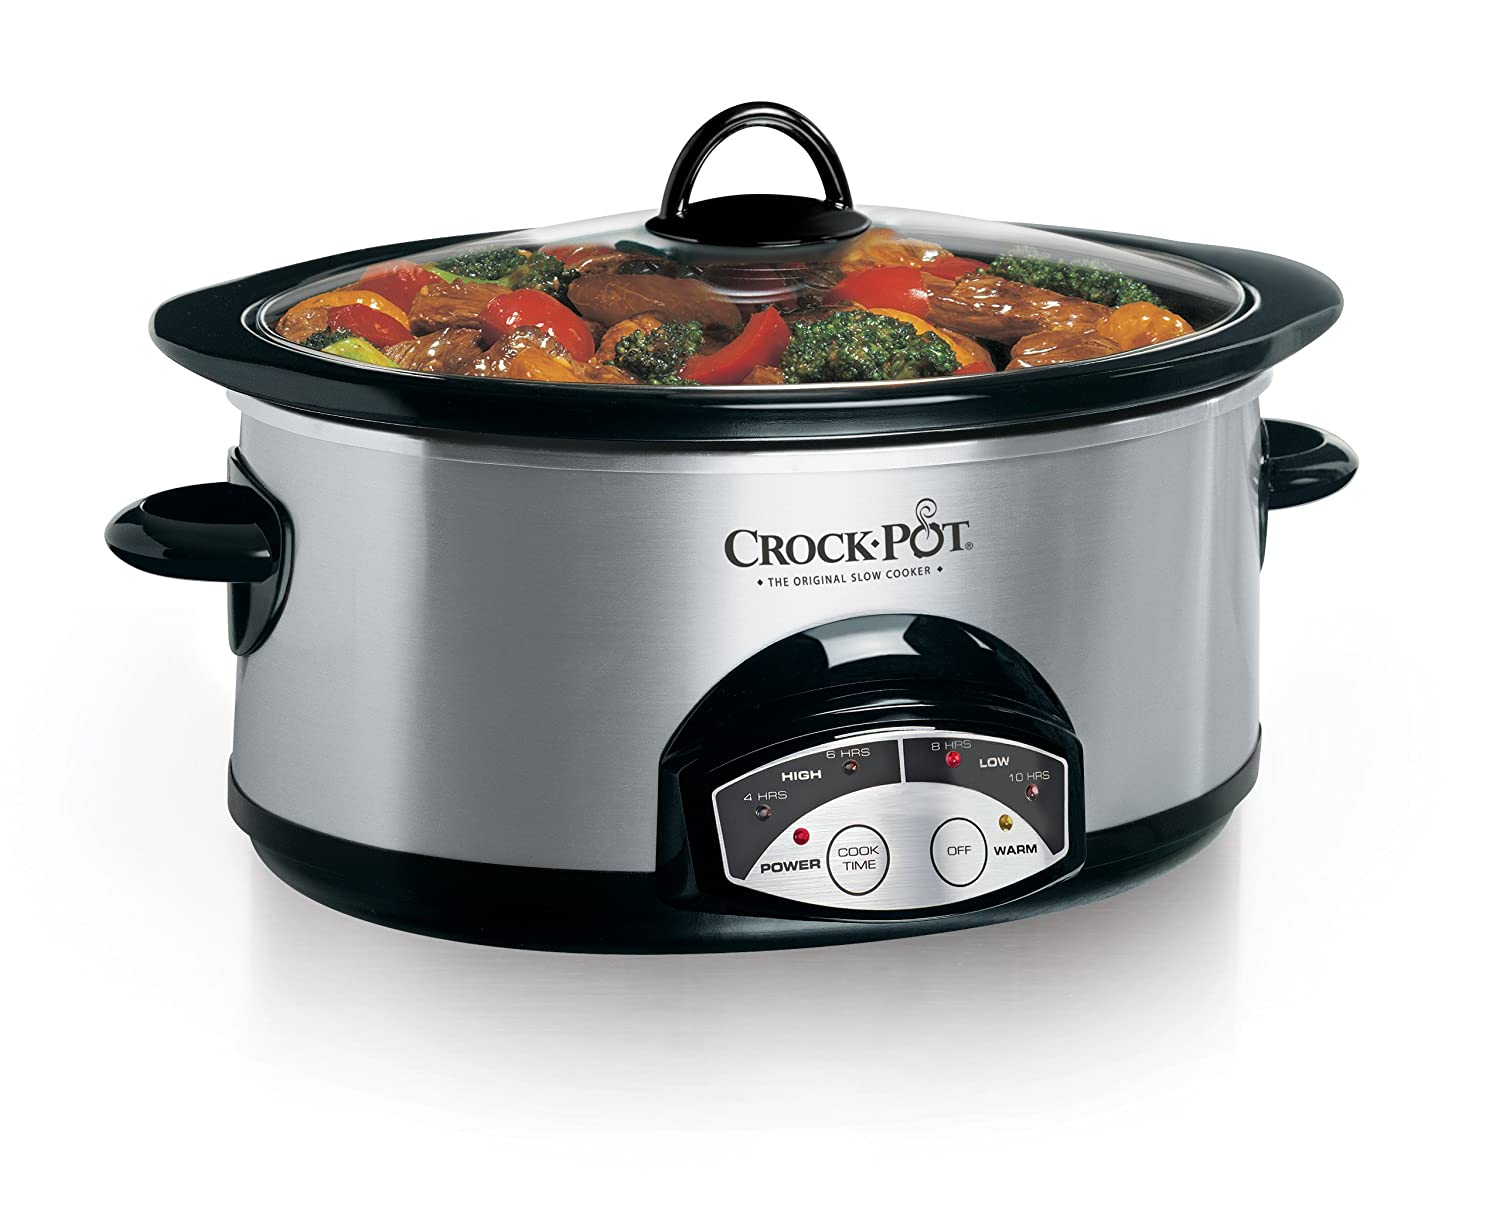 Crock-Pot 6Qt Programmable Slow Cooker, Stainless Steel SCVP600SS-033